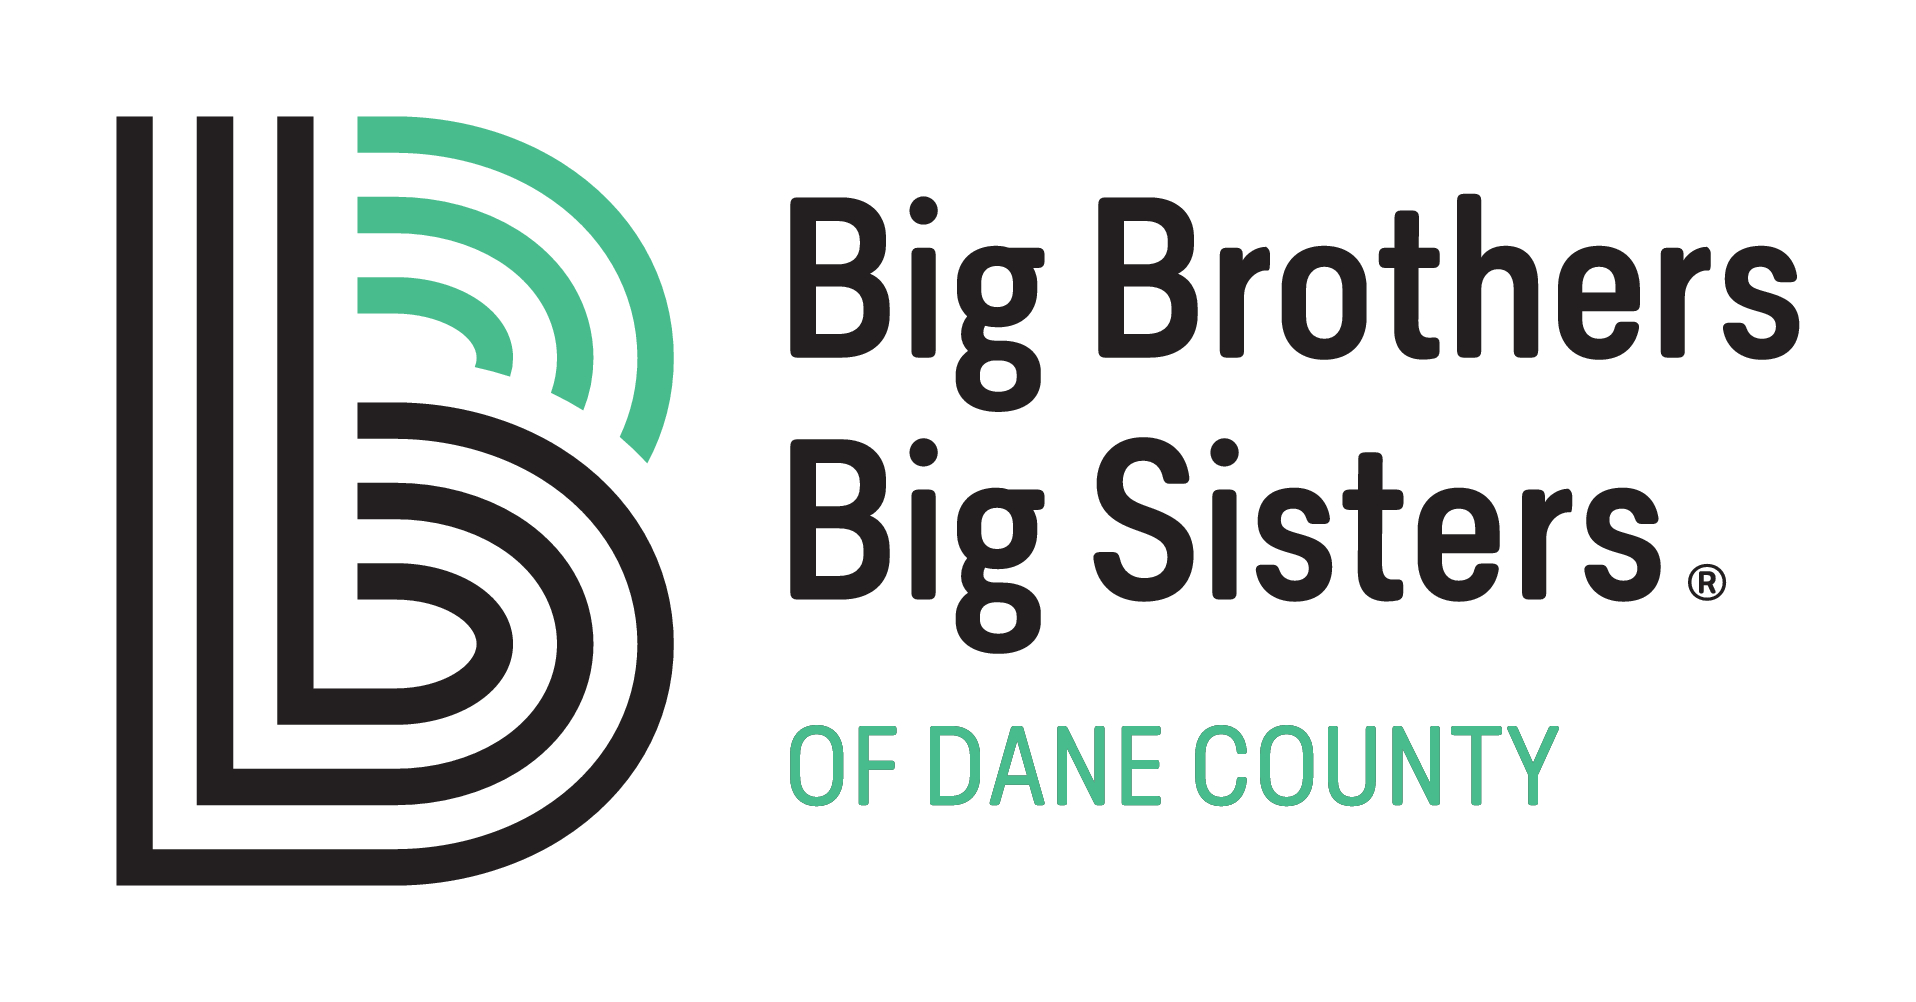 Big Brothers Big Sisters of Dane County